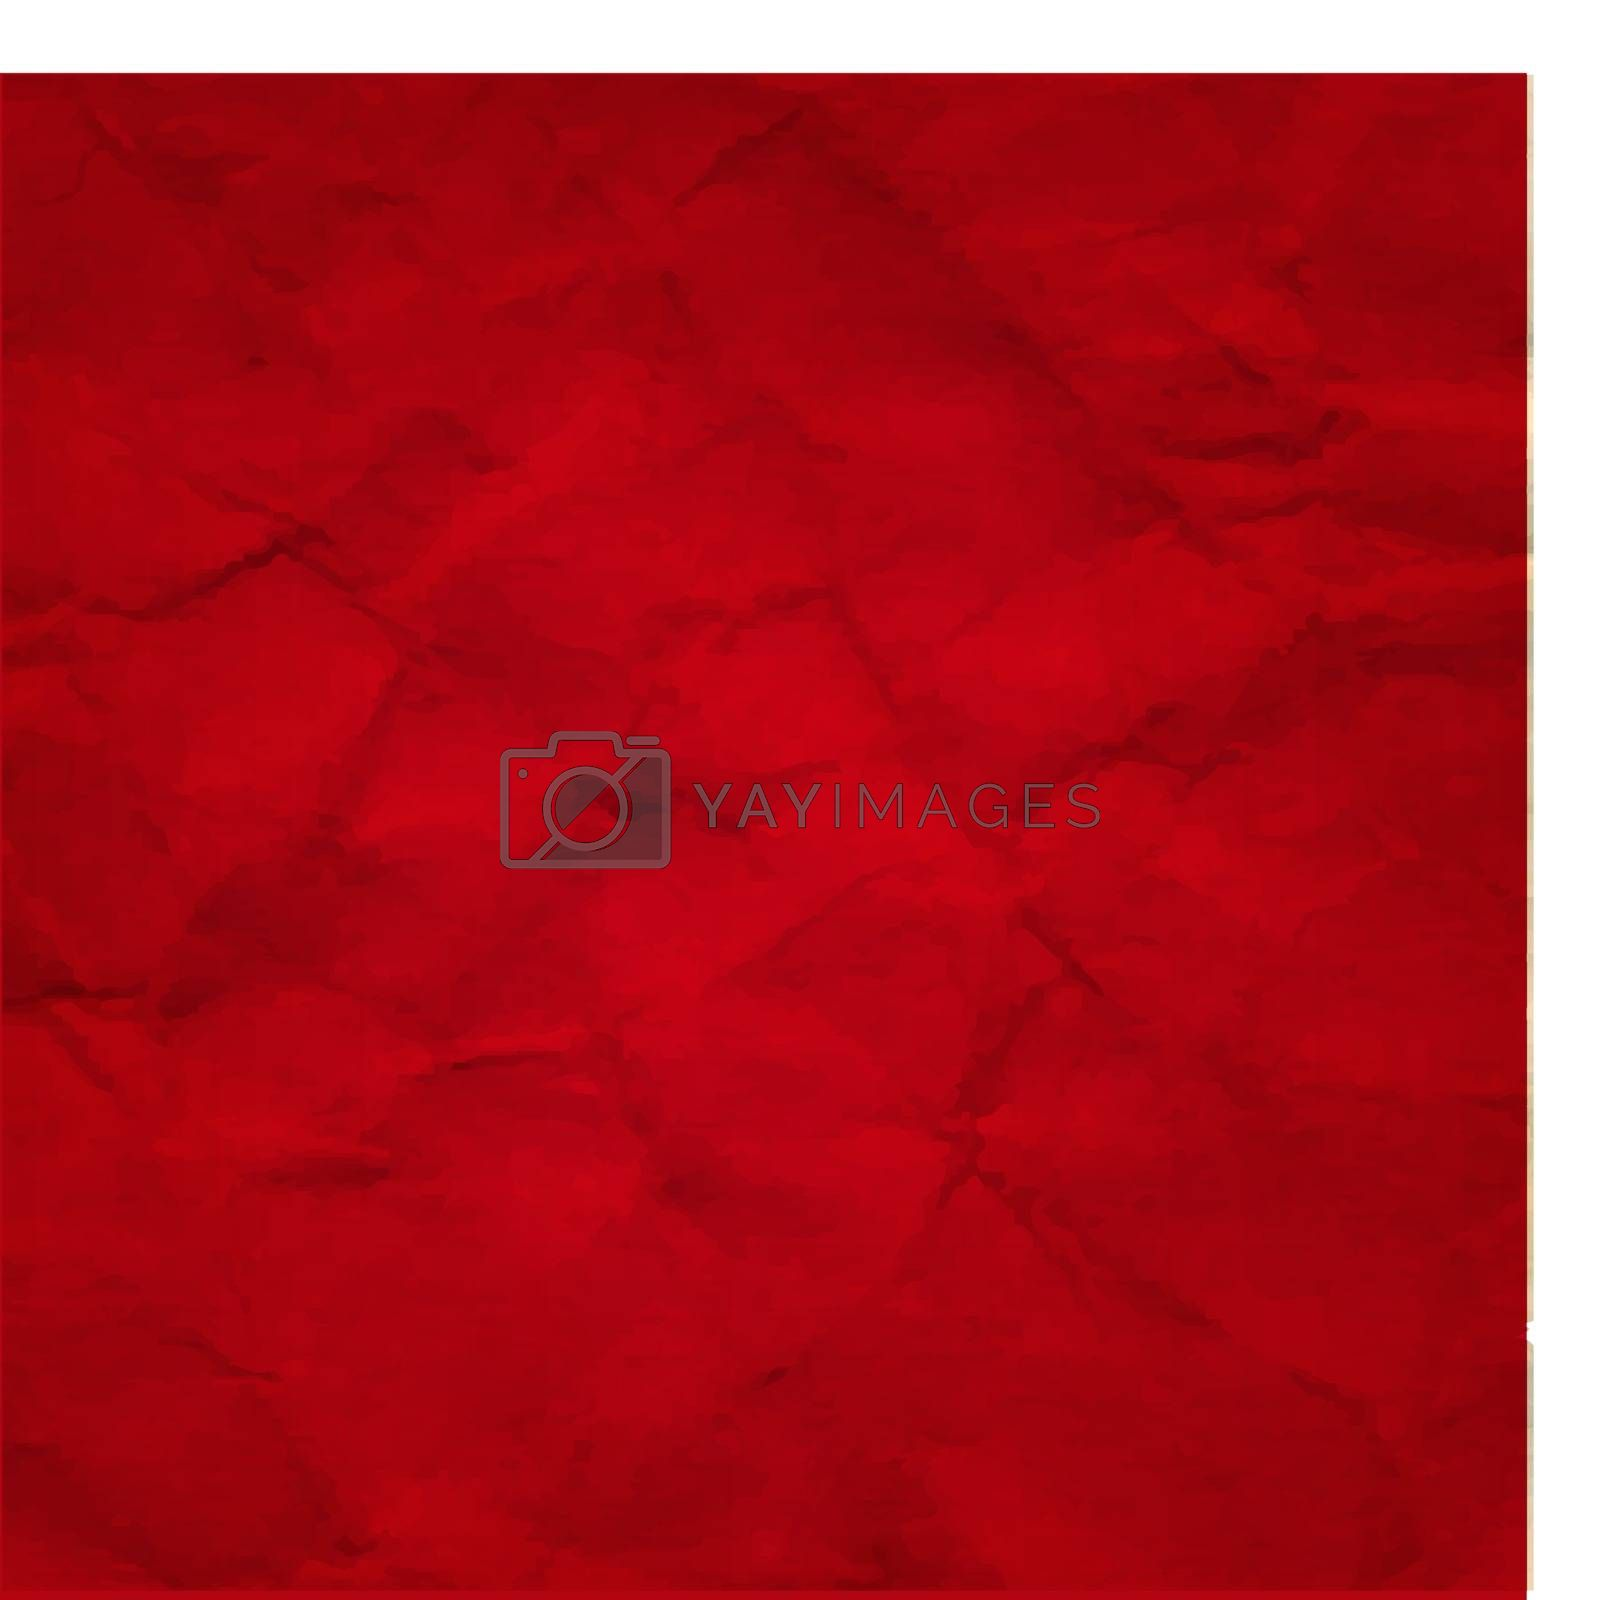 Red Crushed  Paper by barbaliss